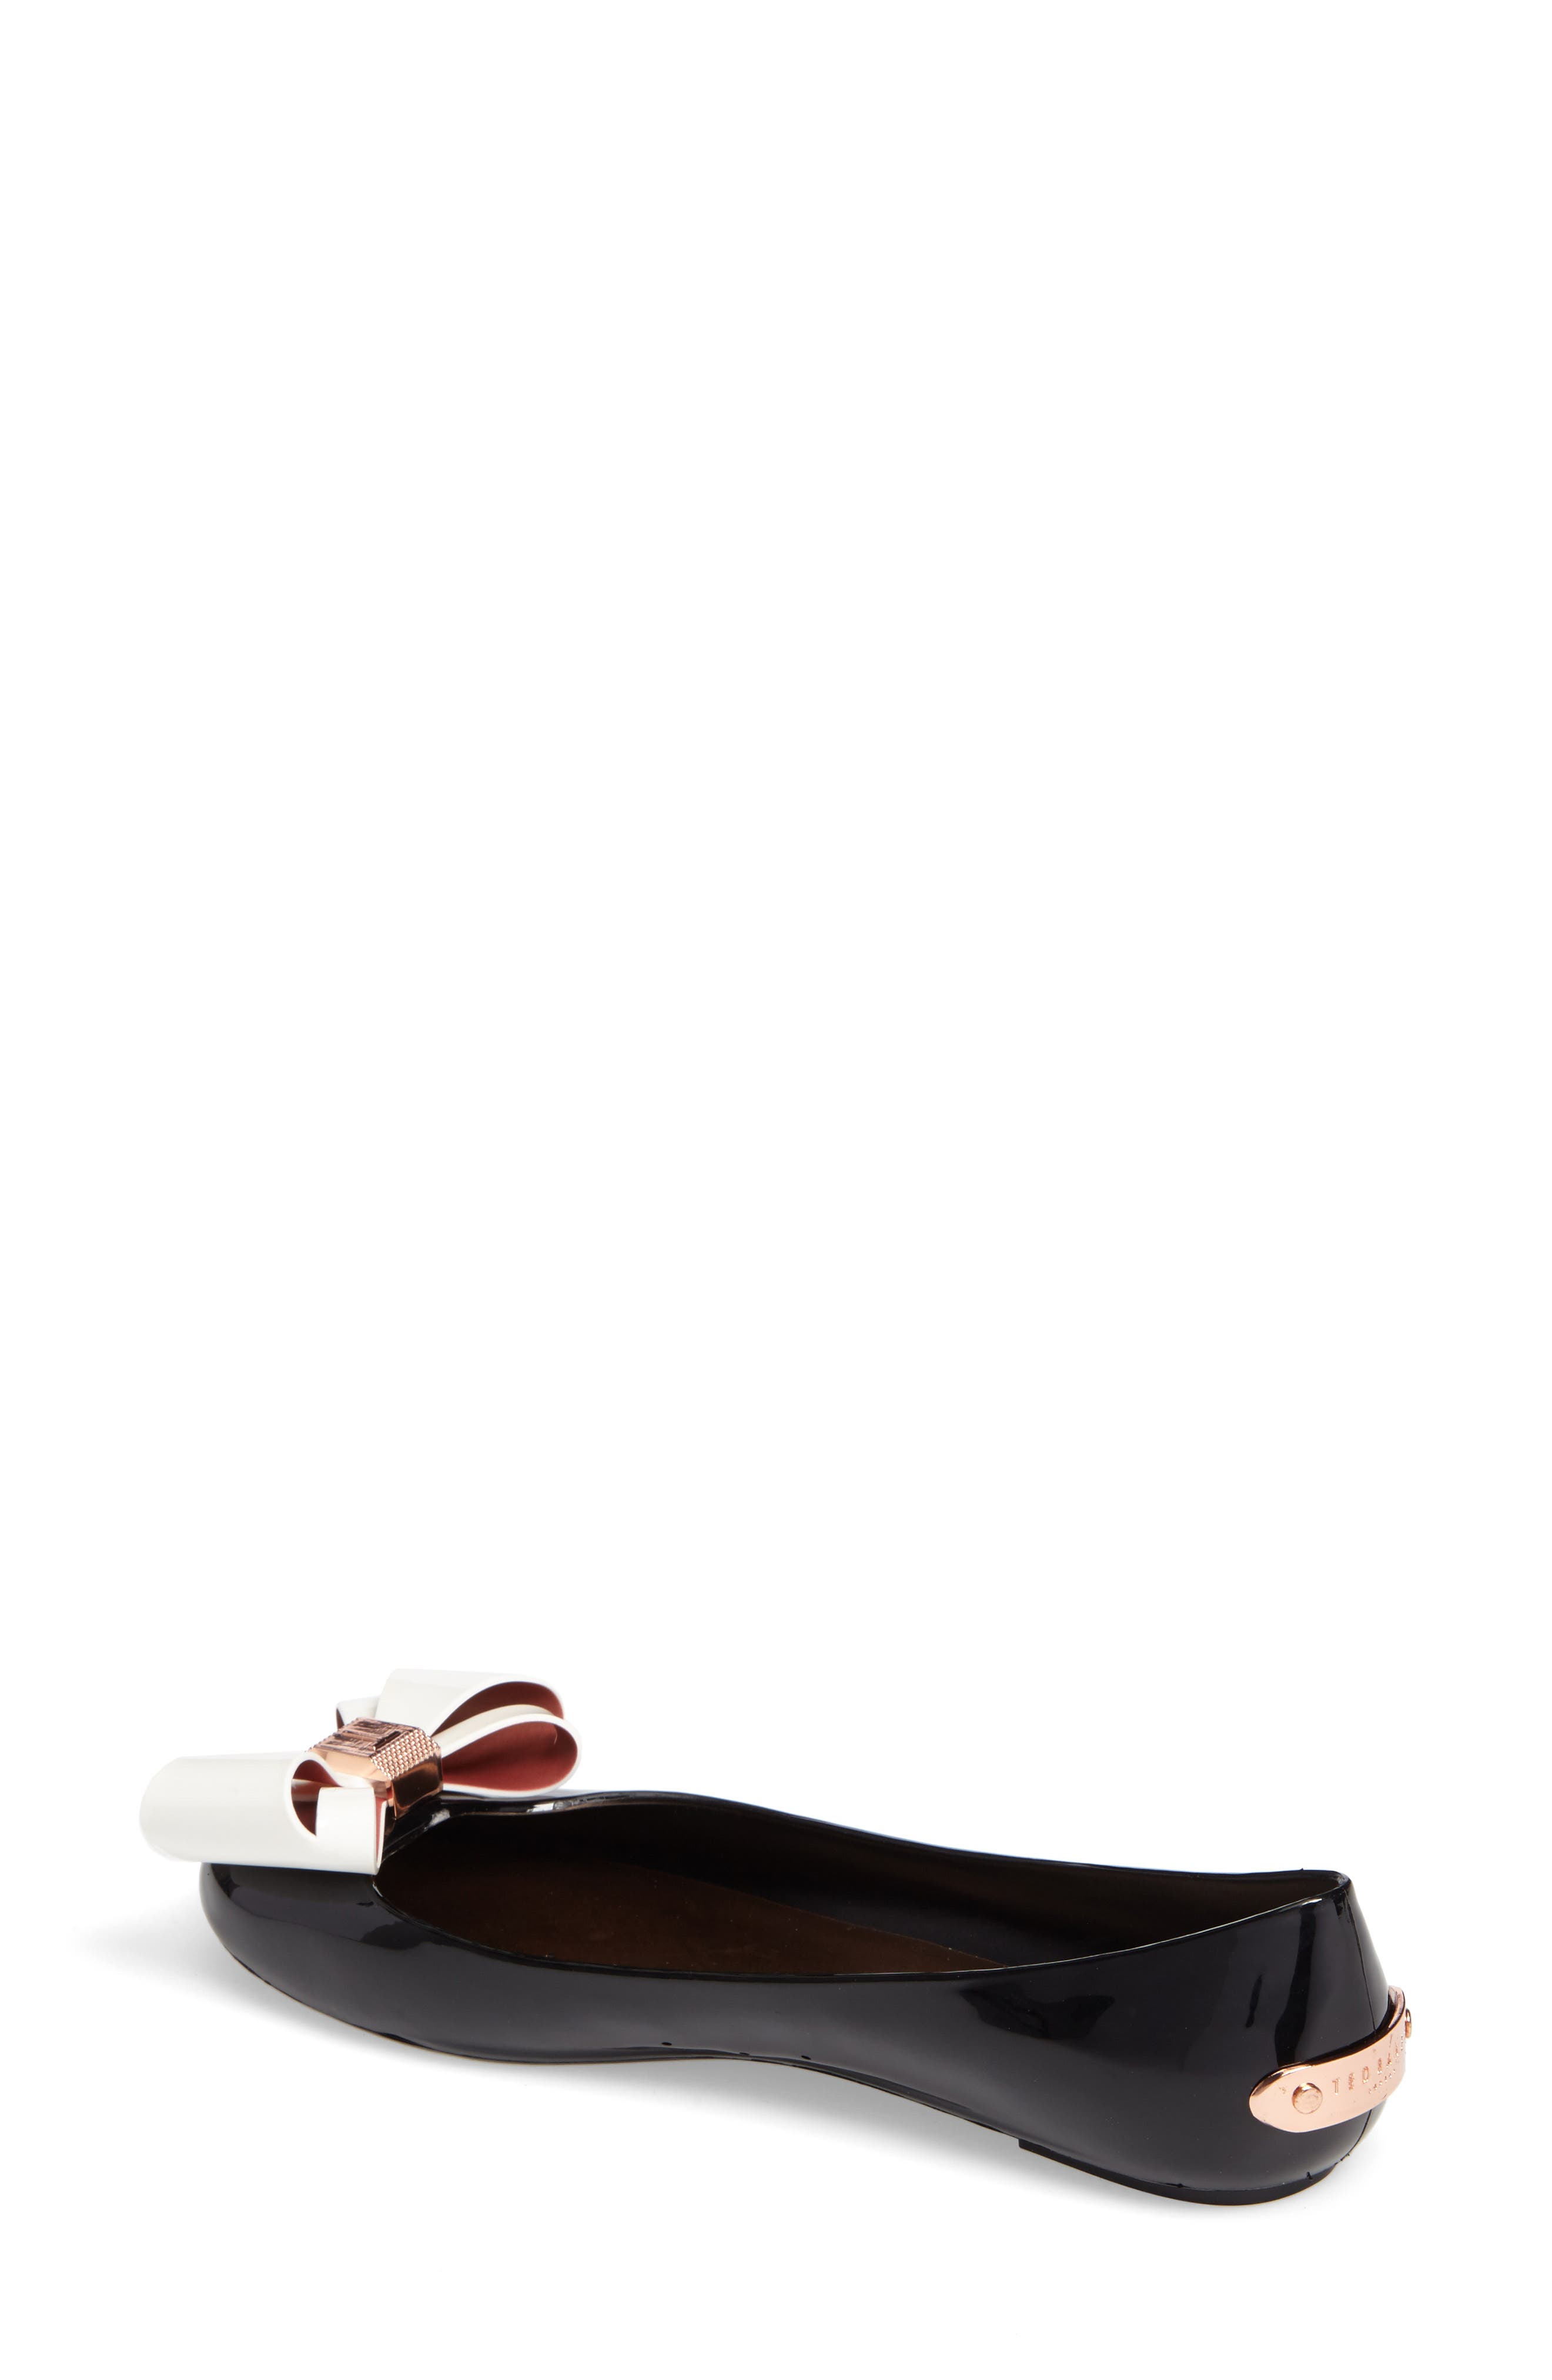 TED BAKER LONDON, Julivia Bow Flat, Alternate thumbnail 2, color, 002